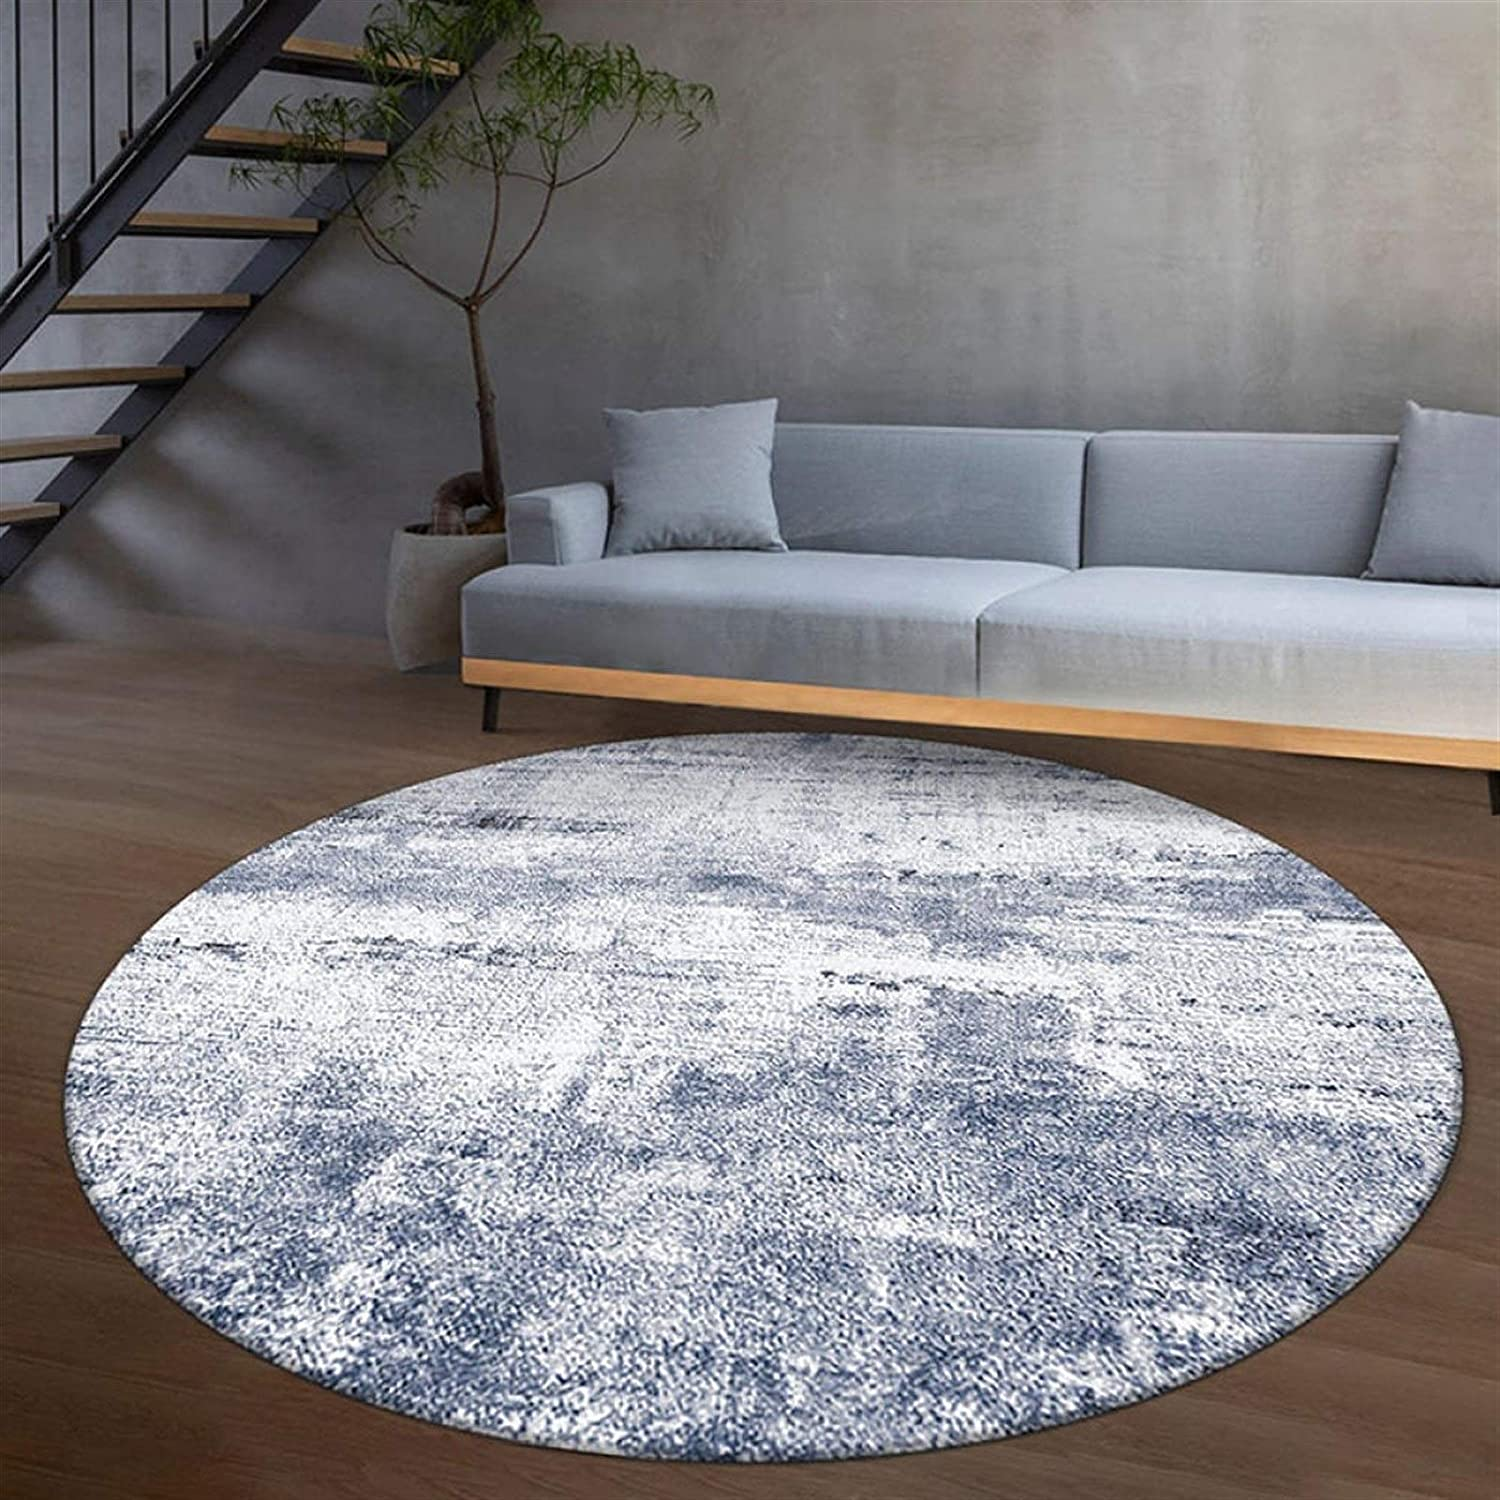 Wuyuana Carpet Wholesale Round Living Room Table Coffee Mat Cheap sale Bedroom